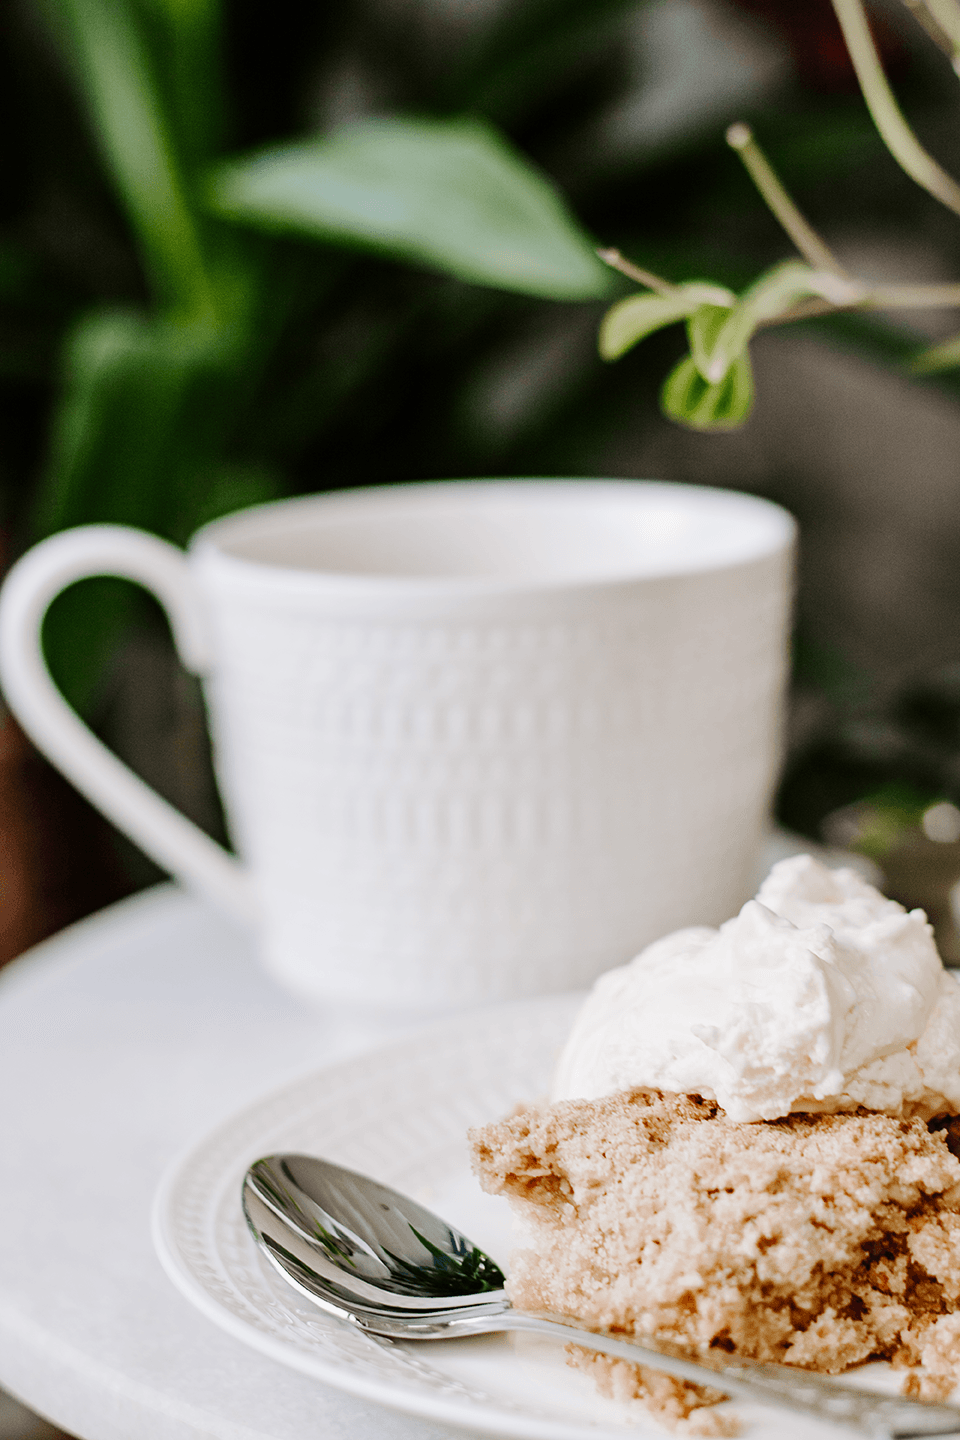 Styled Stock Photography | #lifestyle food blogger | White Cup of Tea Apple Cake & Cream | Single Photo - Grand & Lovely Stock styled photography desktops lifestyle screens desktops stationary